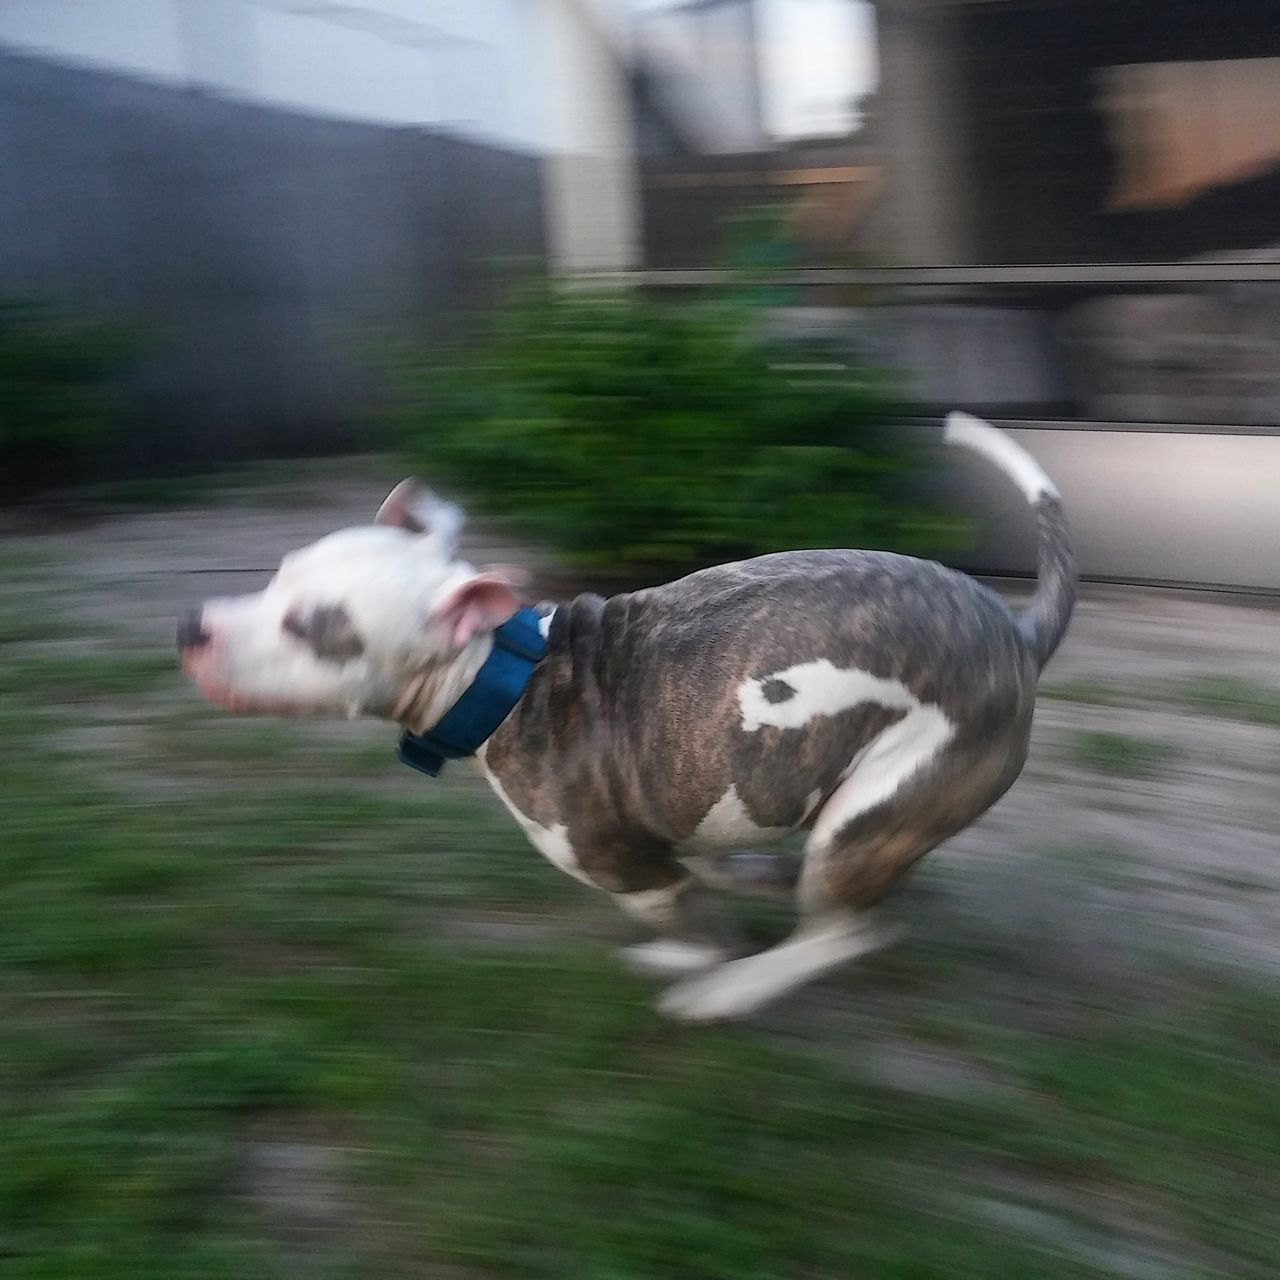 Dog Pitbull Fast Movement Movement Photography Burst Burstphotos Running Dog Running Emotion Happy Dog